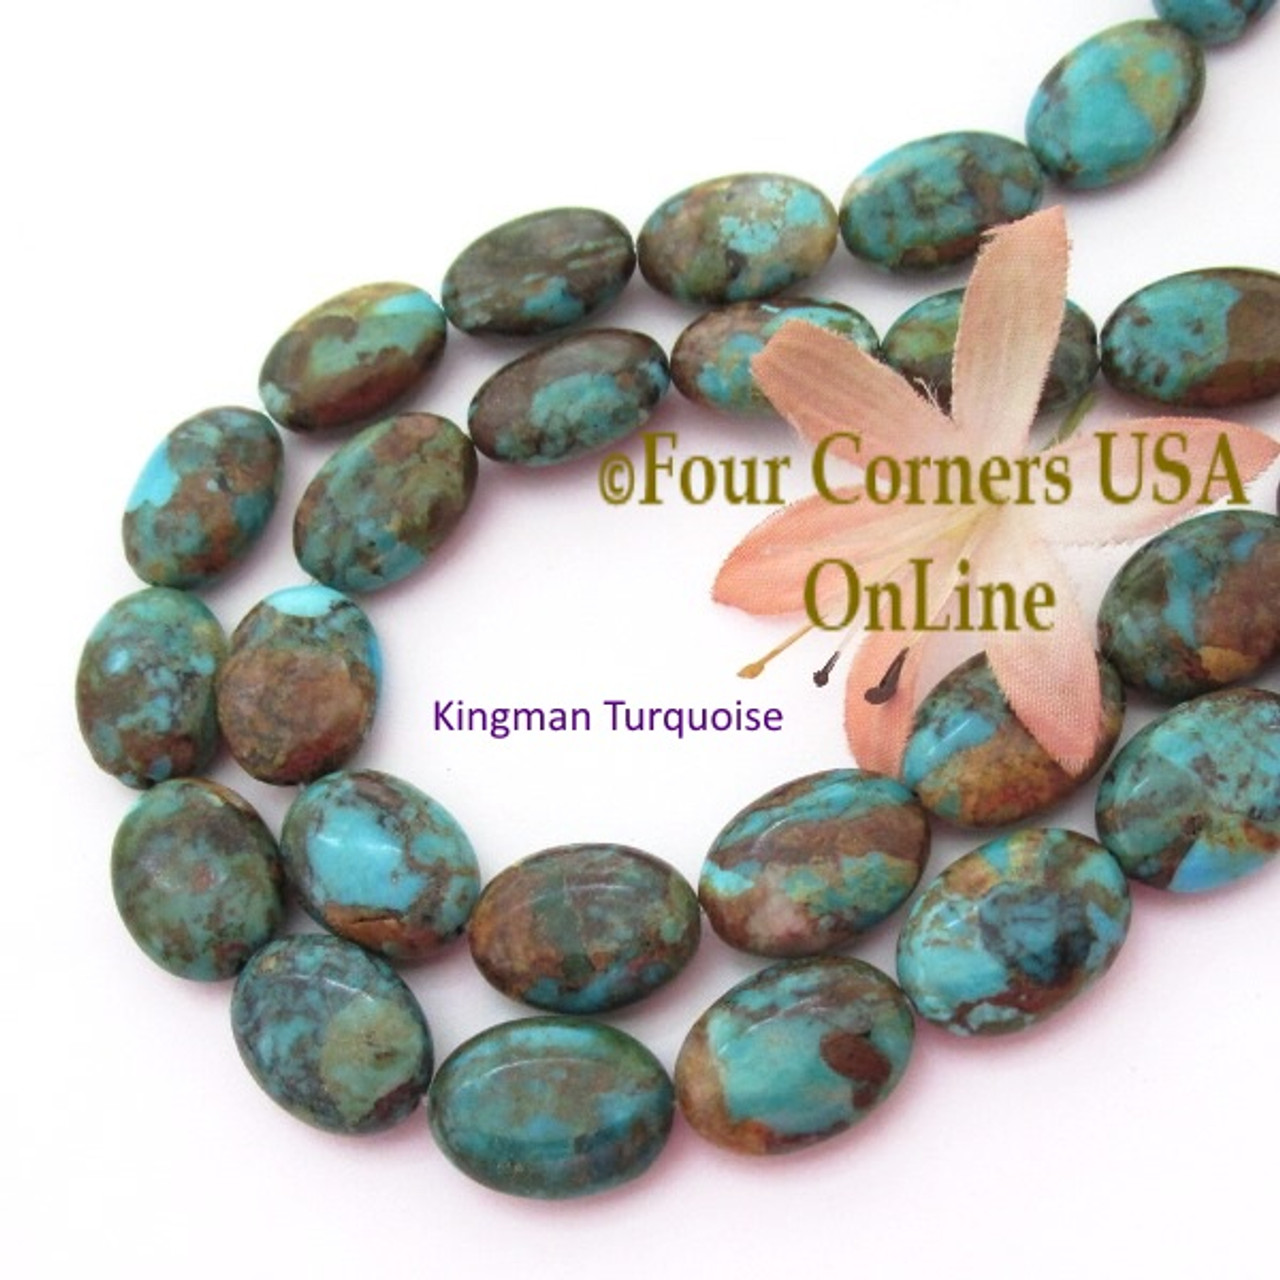 kingman tq beads online inch pin strands blue teal turquoise usa rondelle